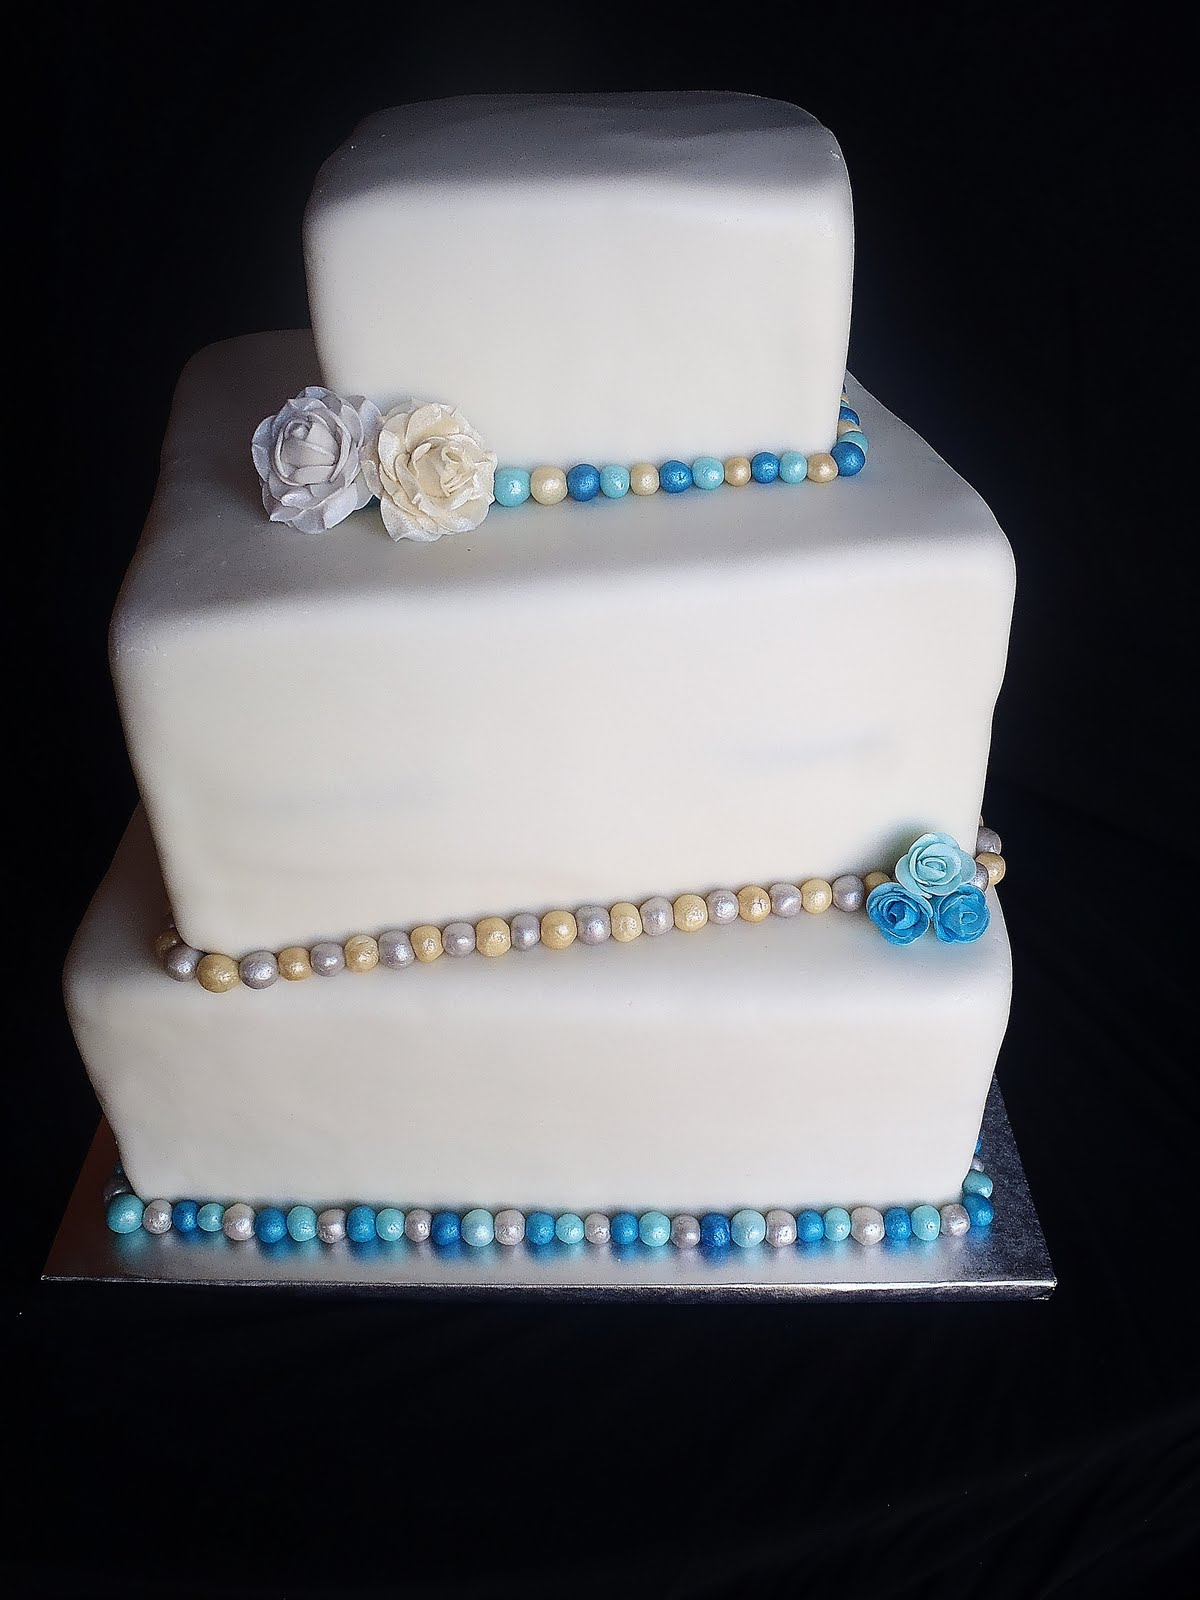 Simply Delicious Cakes: 60th Wedding Anniversary